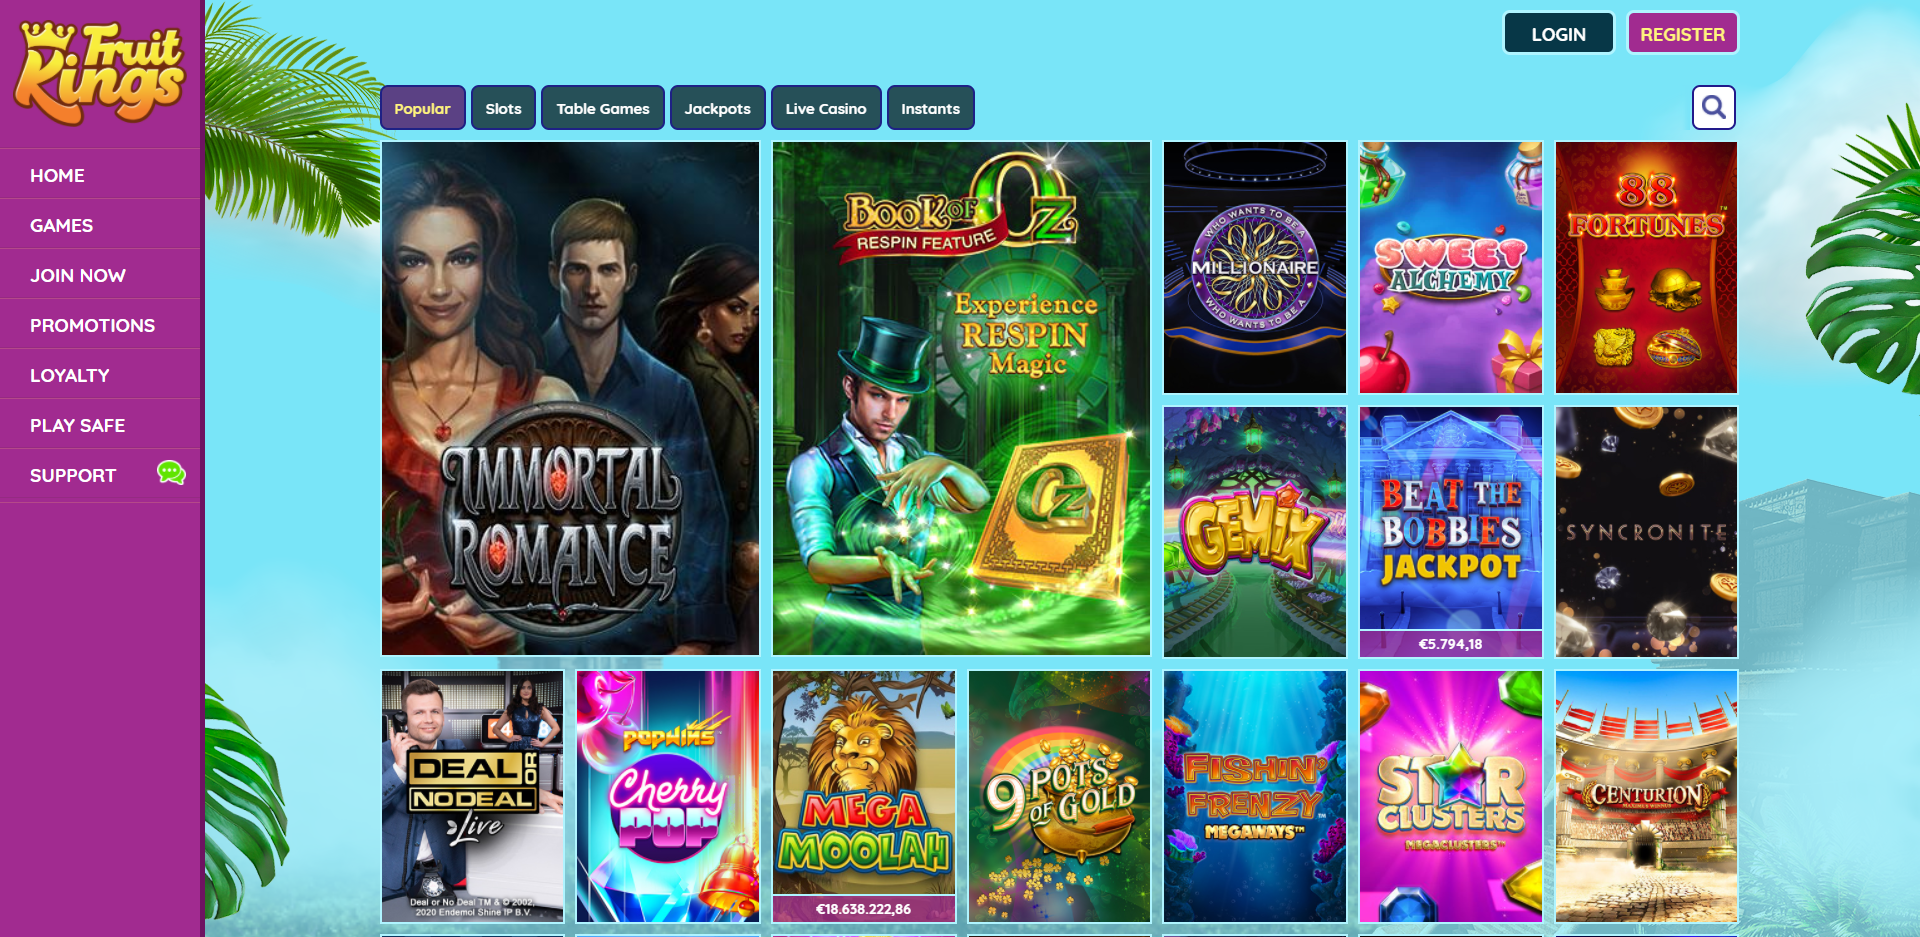 Casino Games in FruitKings